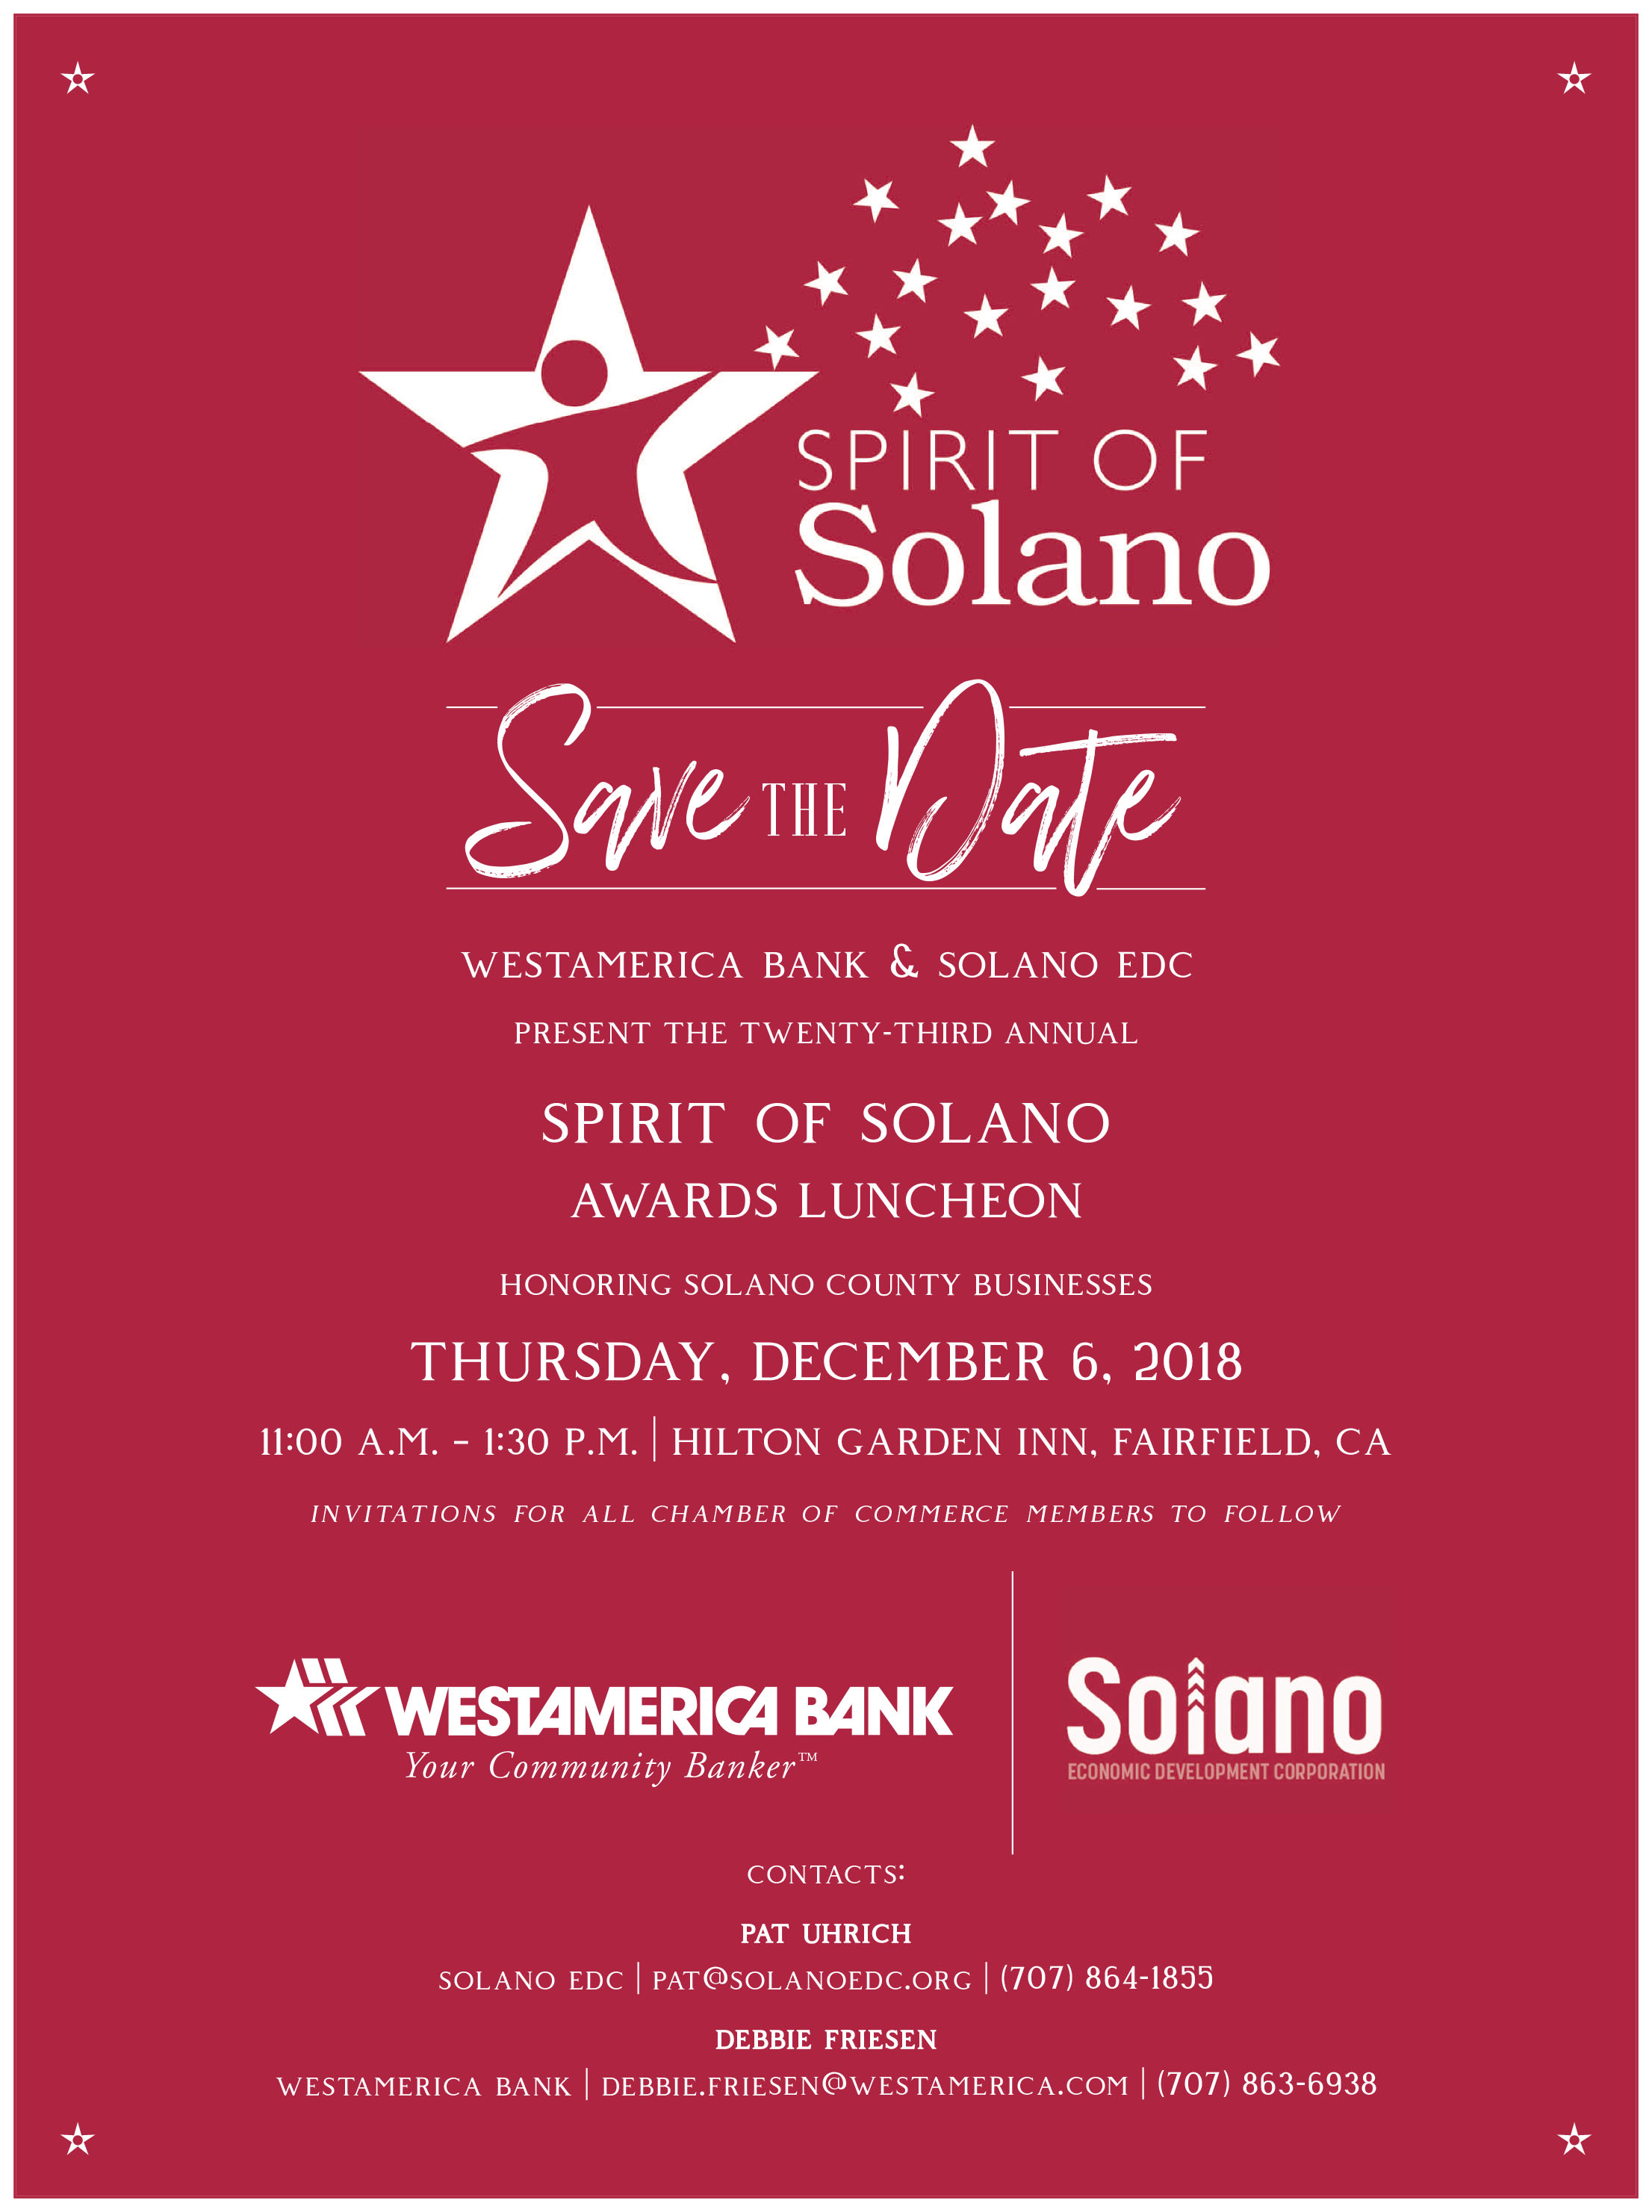 Spirit-of-Solano-Awards-Luncheon-2018